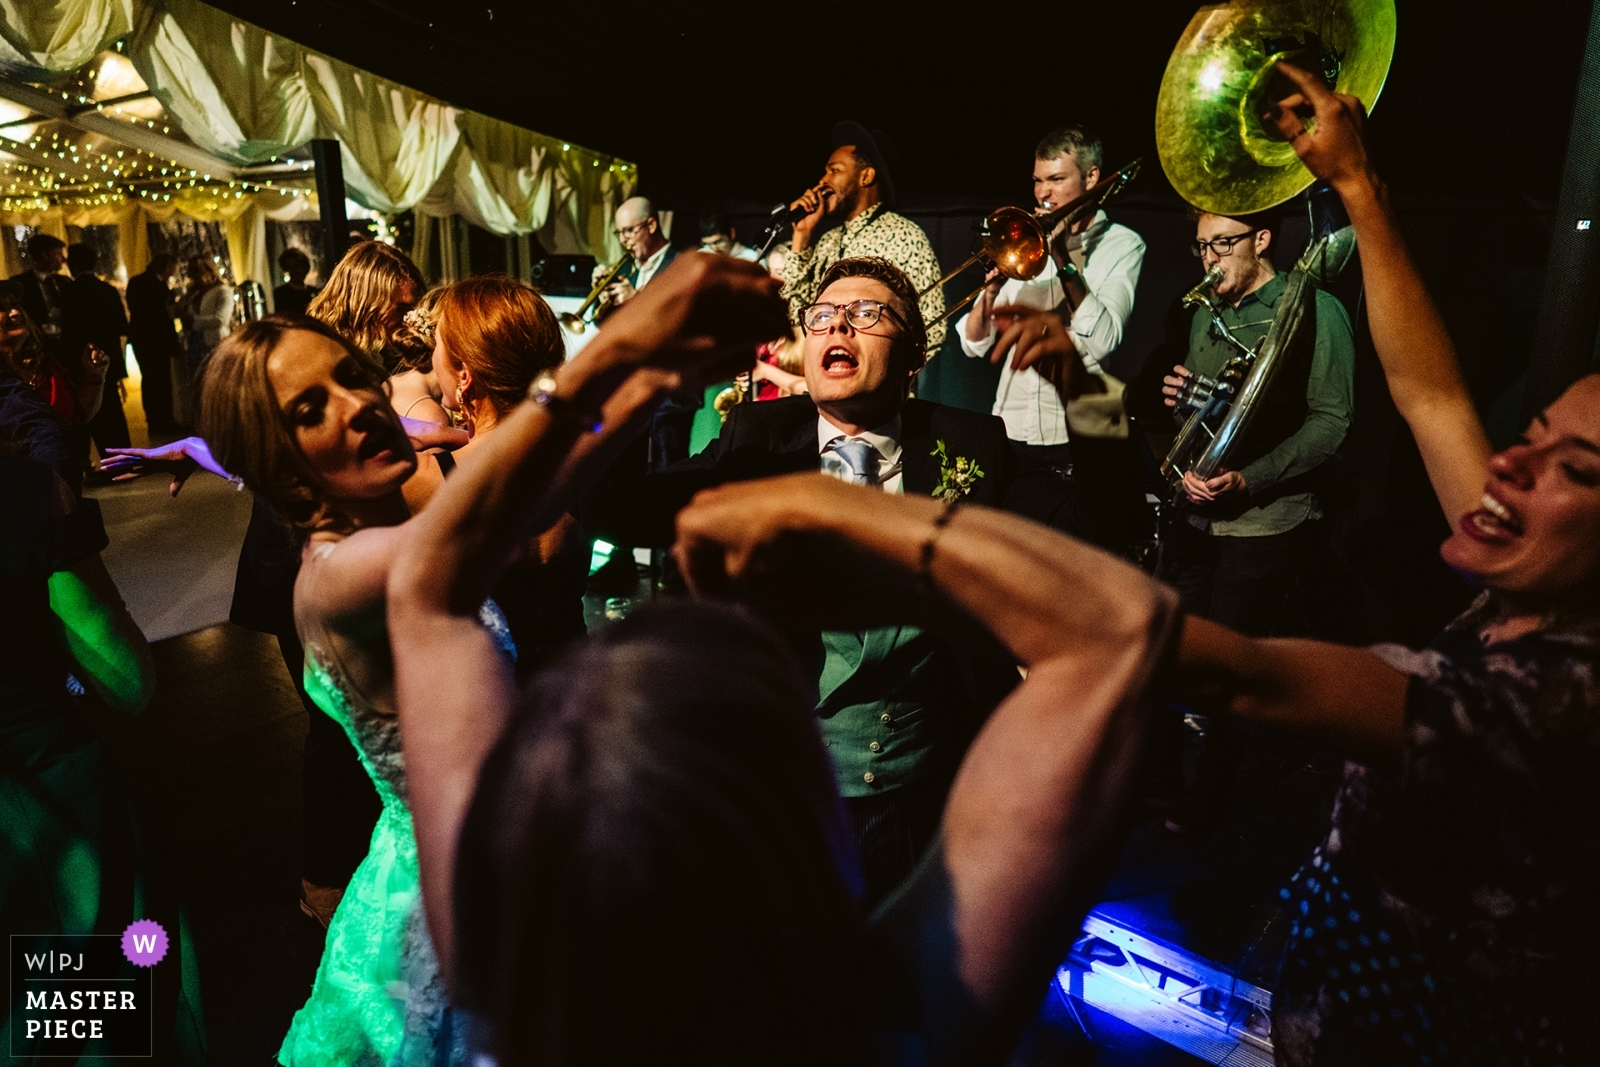 Dancefloor action - Greater Manchester, England Wedding Photography -  | Family home, Reception, Chester, UK